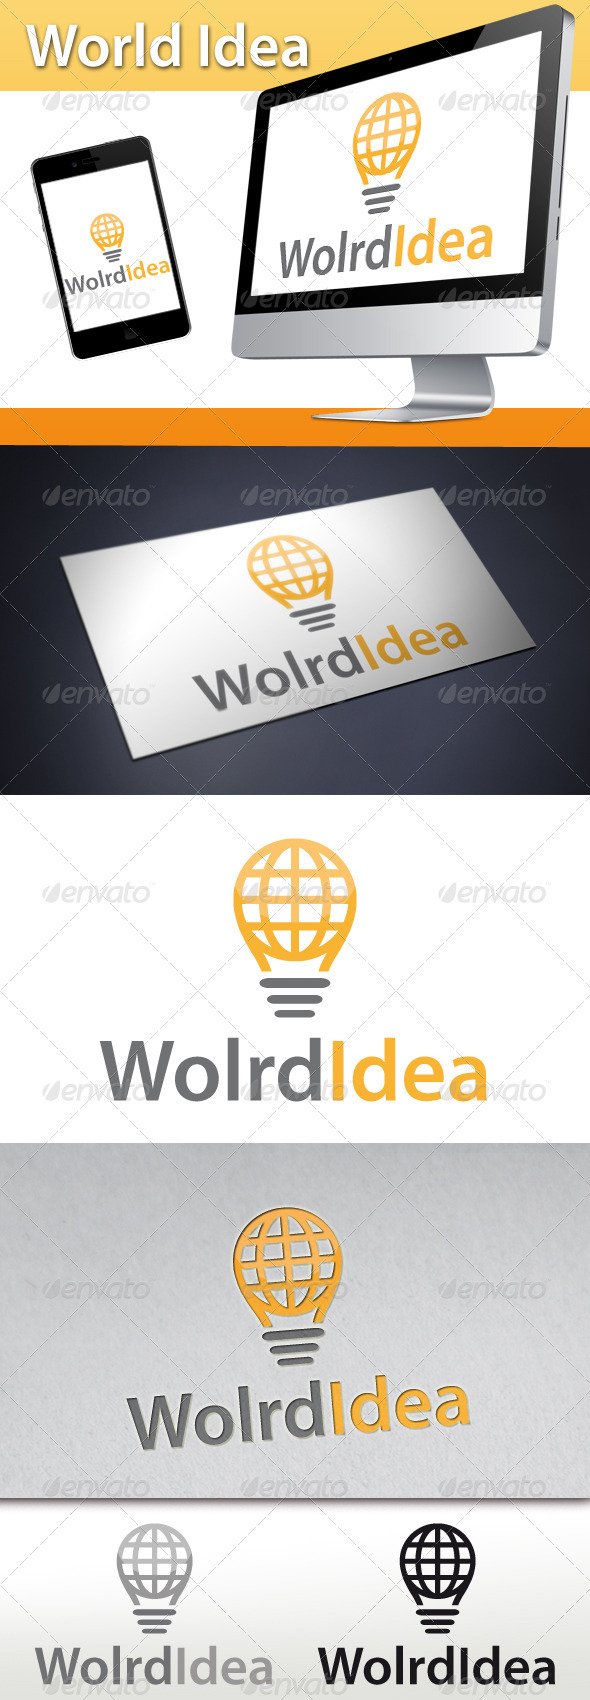 GraphicRiver World Idea Logo 3317155